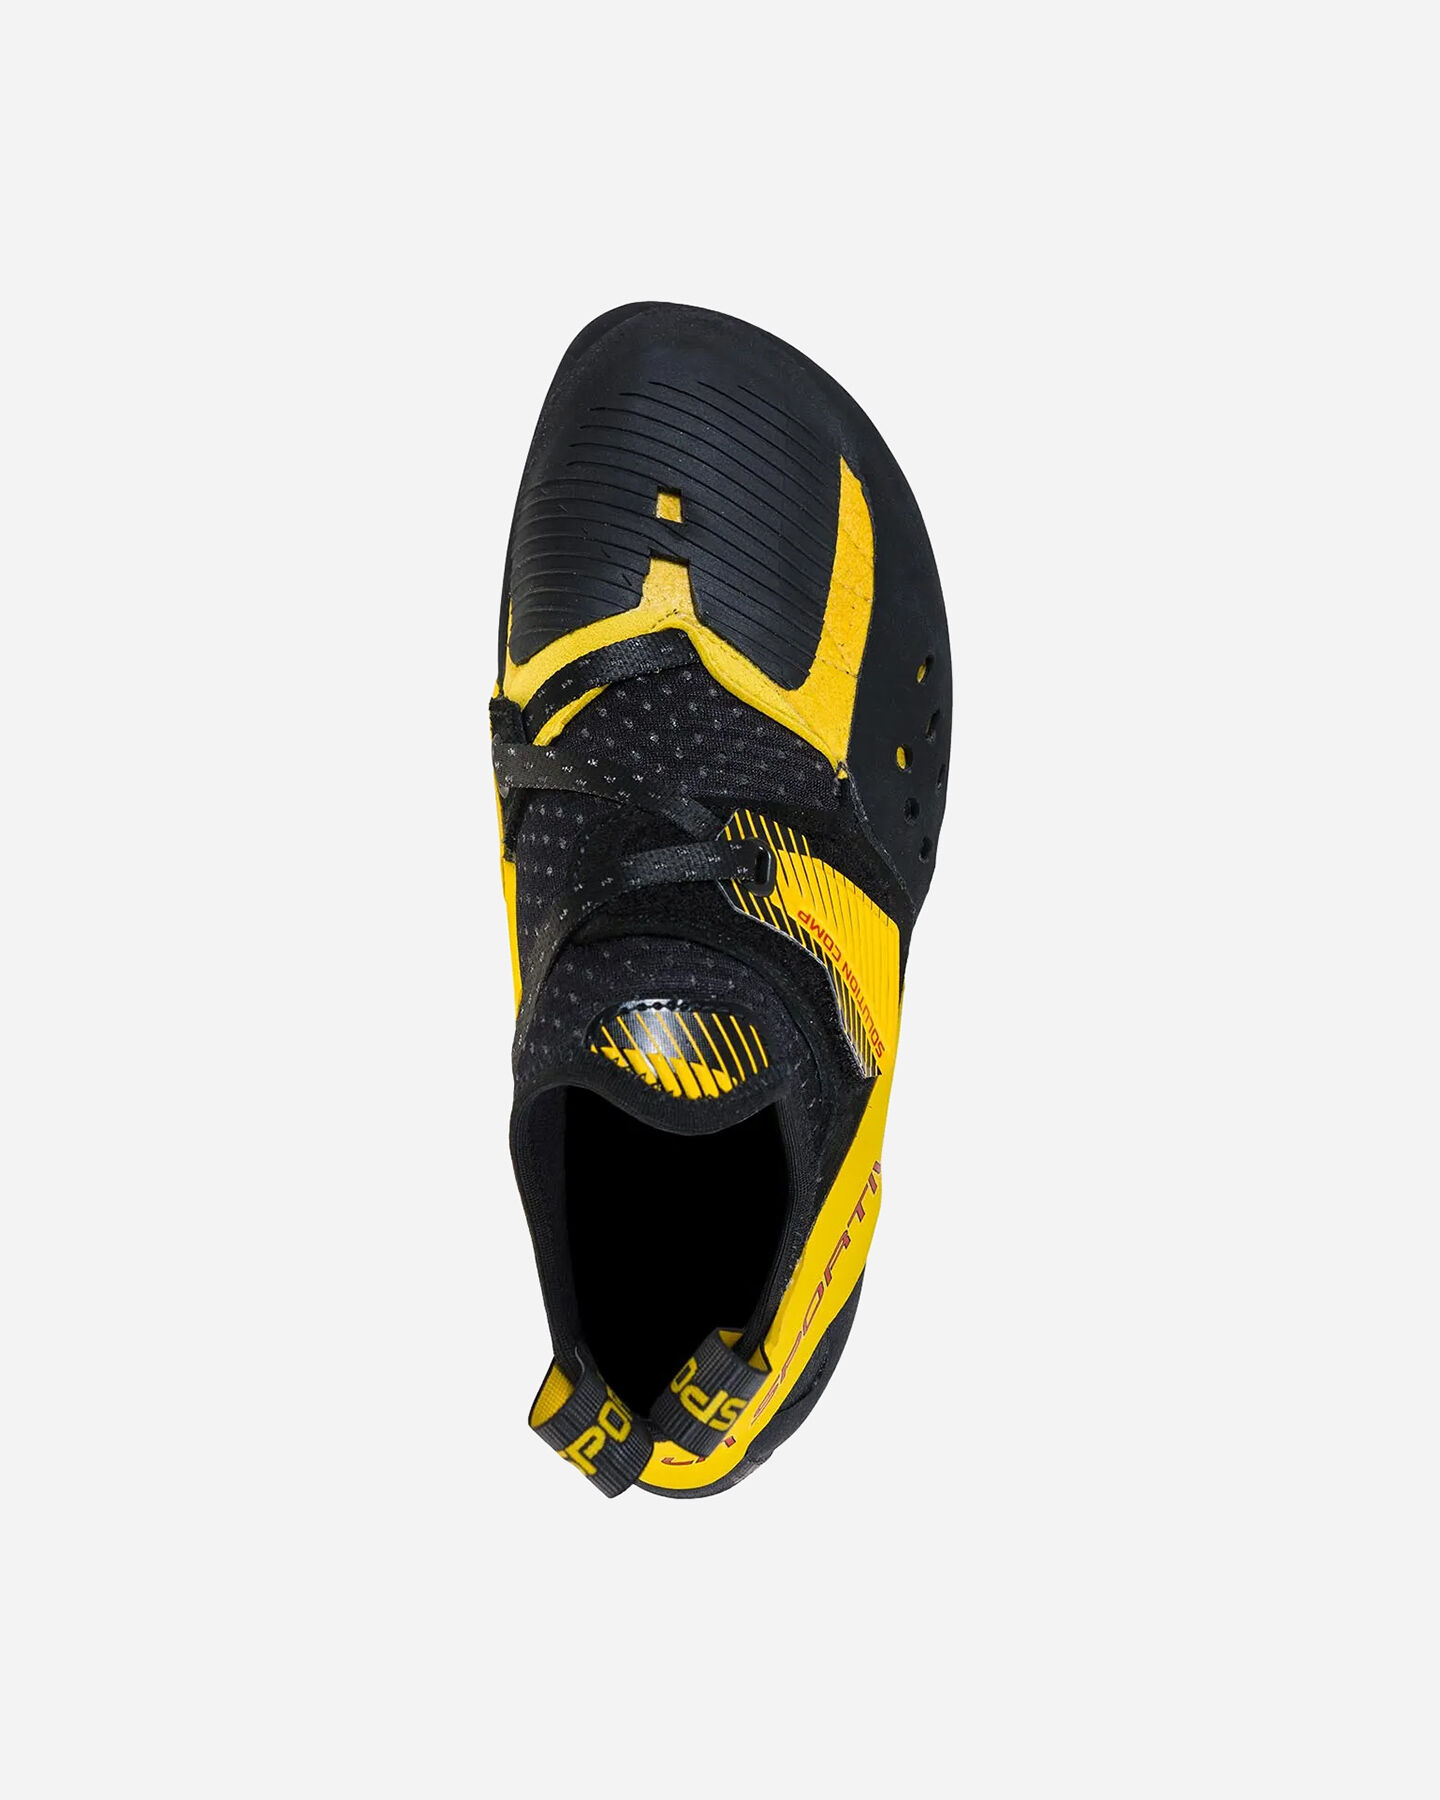 Scarpette arrampicata LA SPORTIVA SOLUTION COMP S5198171 scatto 3